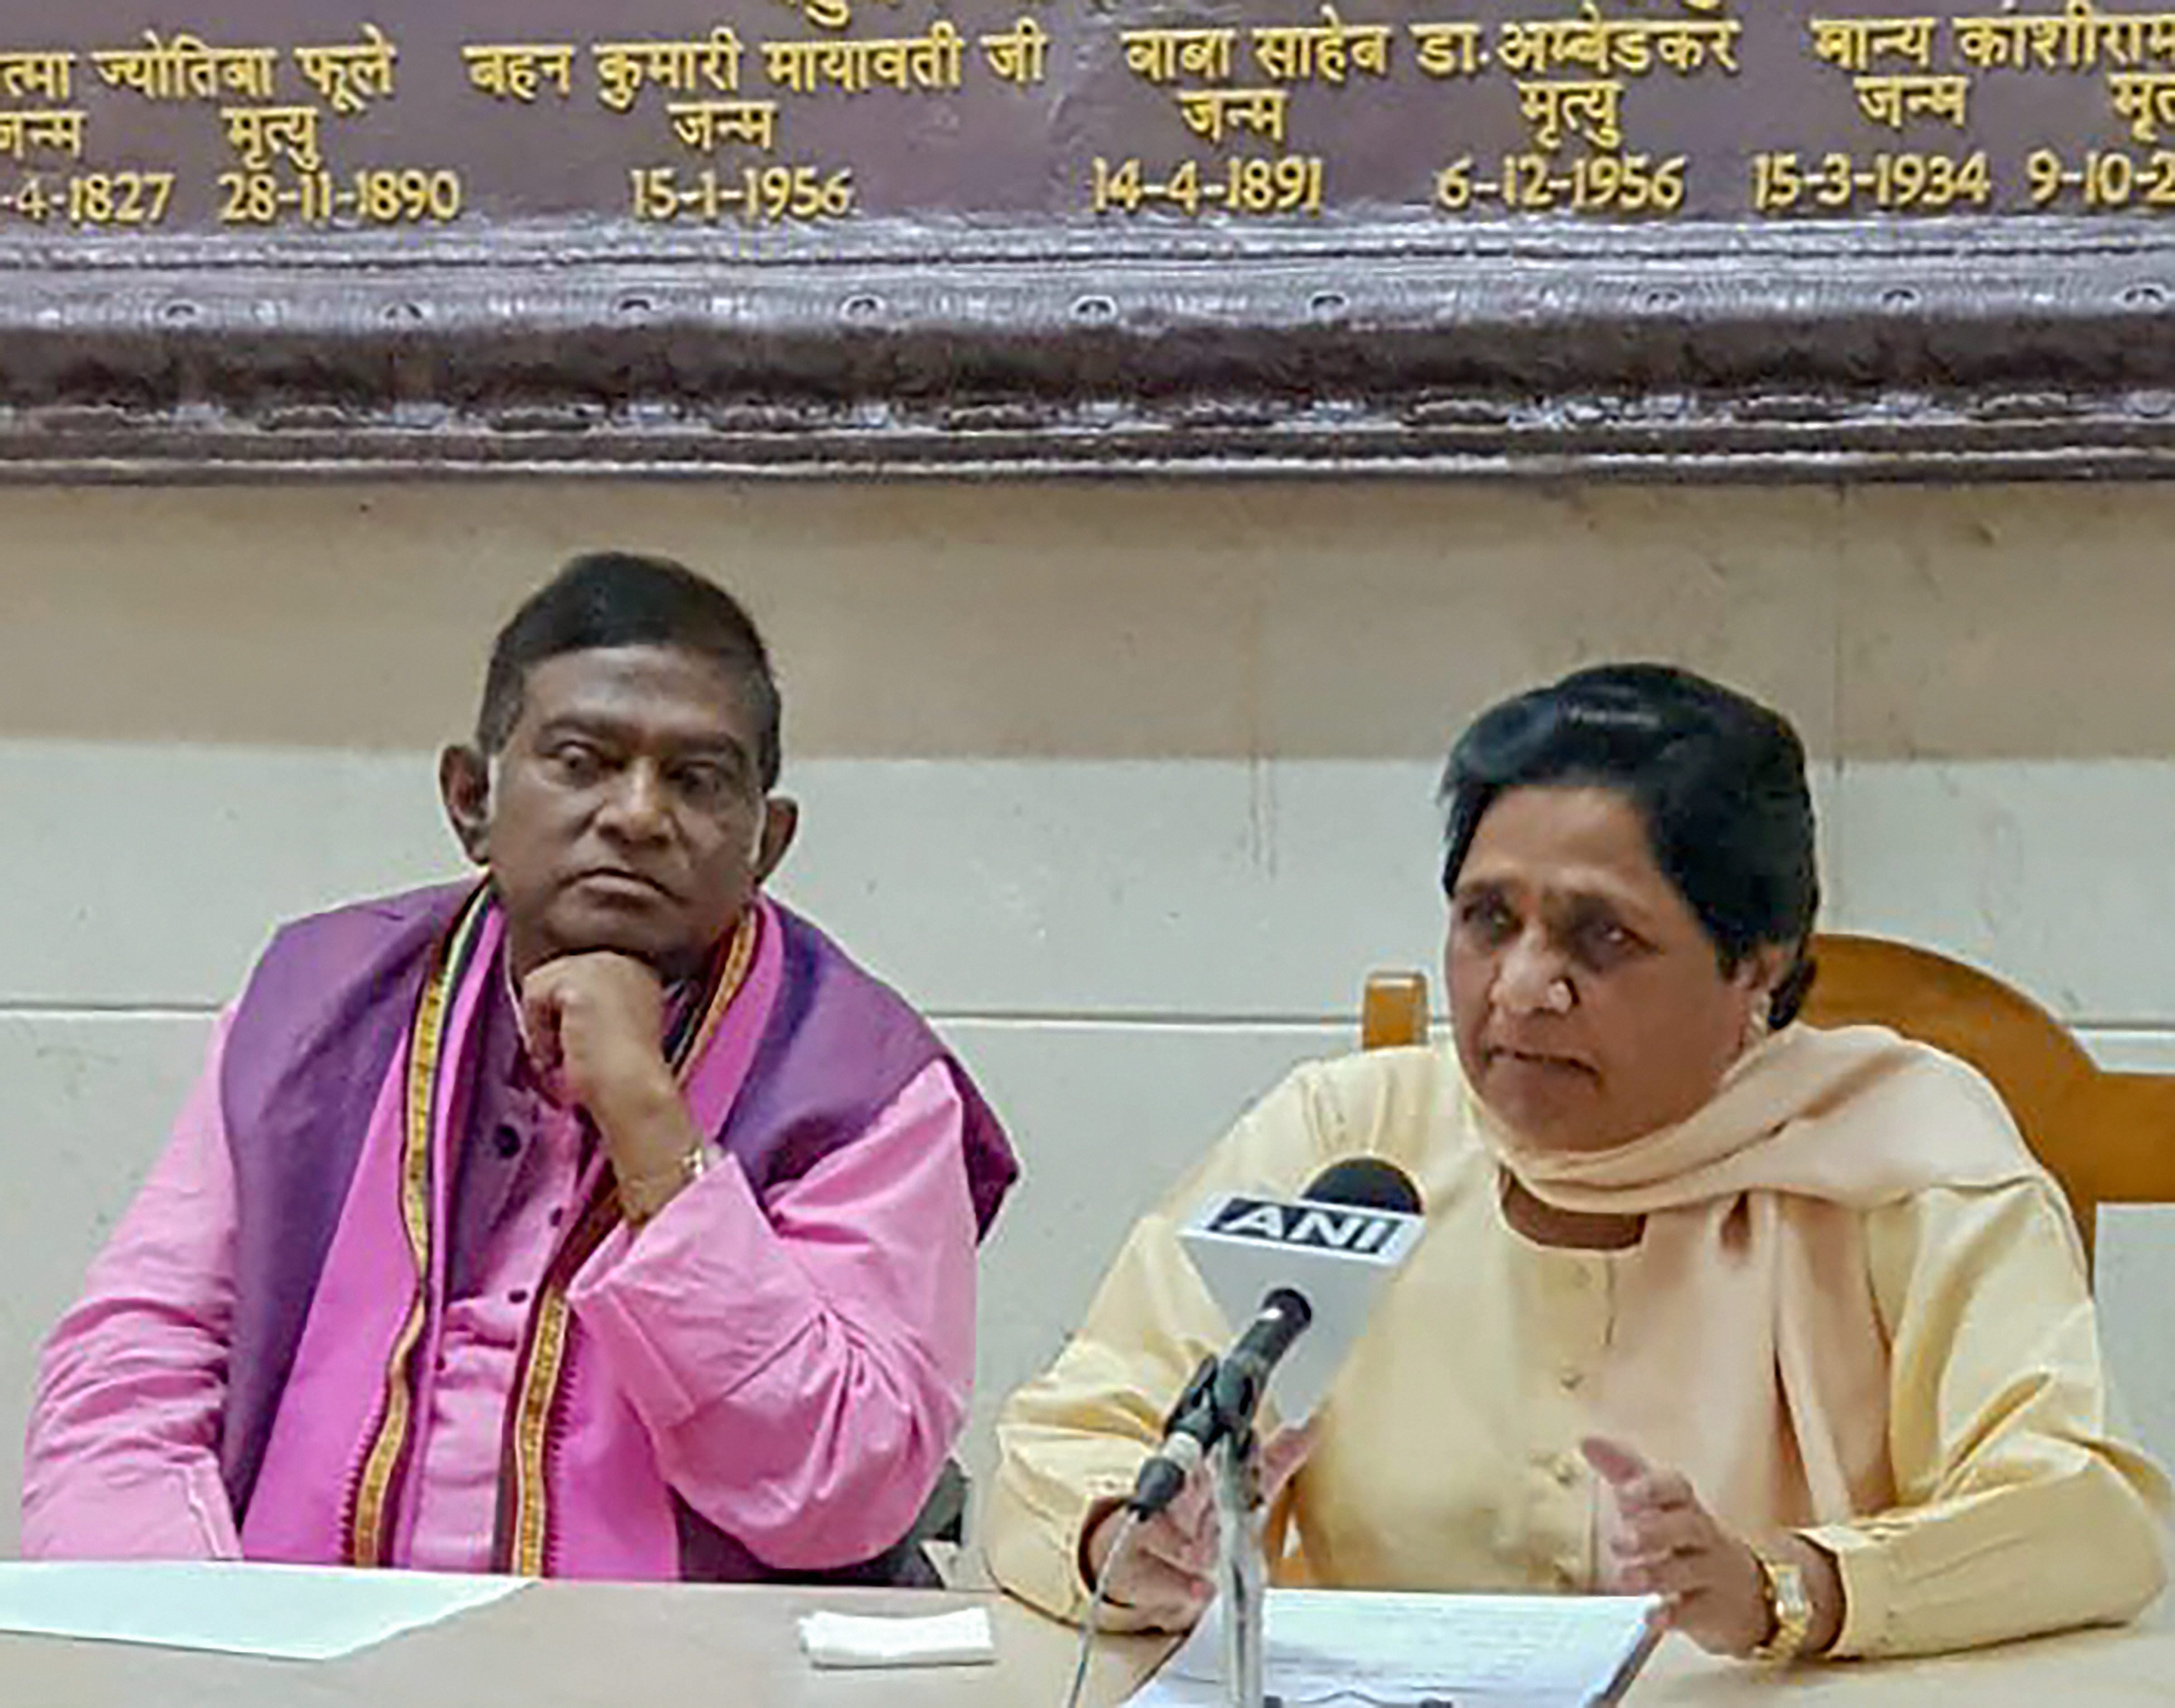 BSP chief Mayawati and Janata Congress president Ajit Jogi at the news conference in Lucknow on September 20 to announce their alliance for elections in Chhattisgarh.